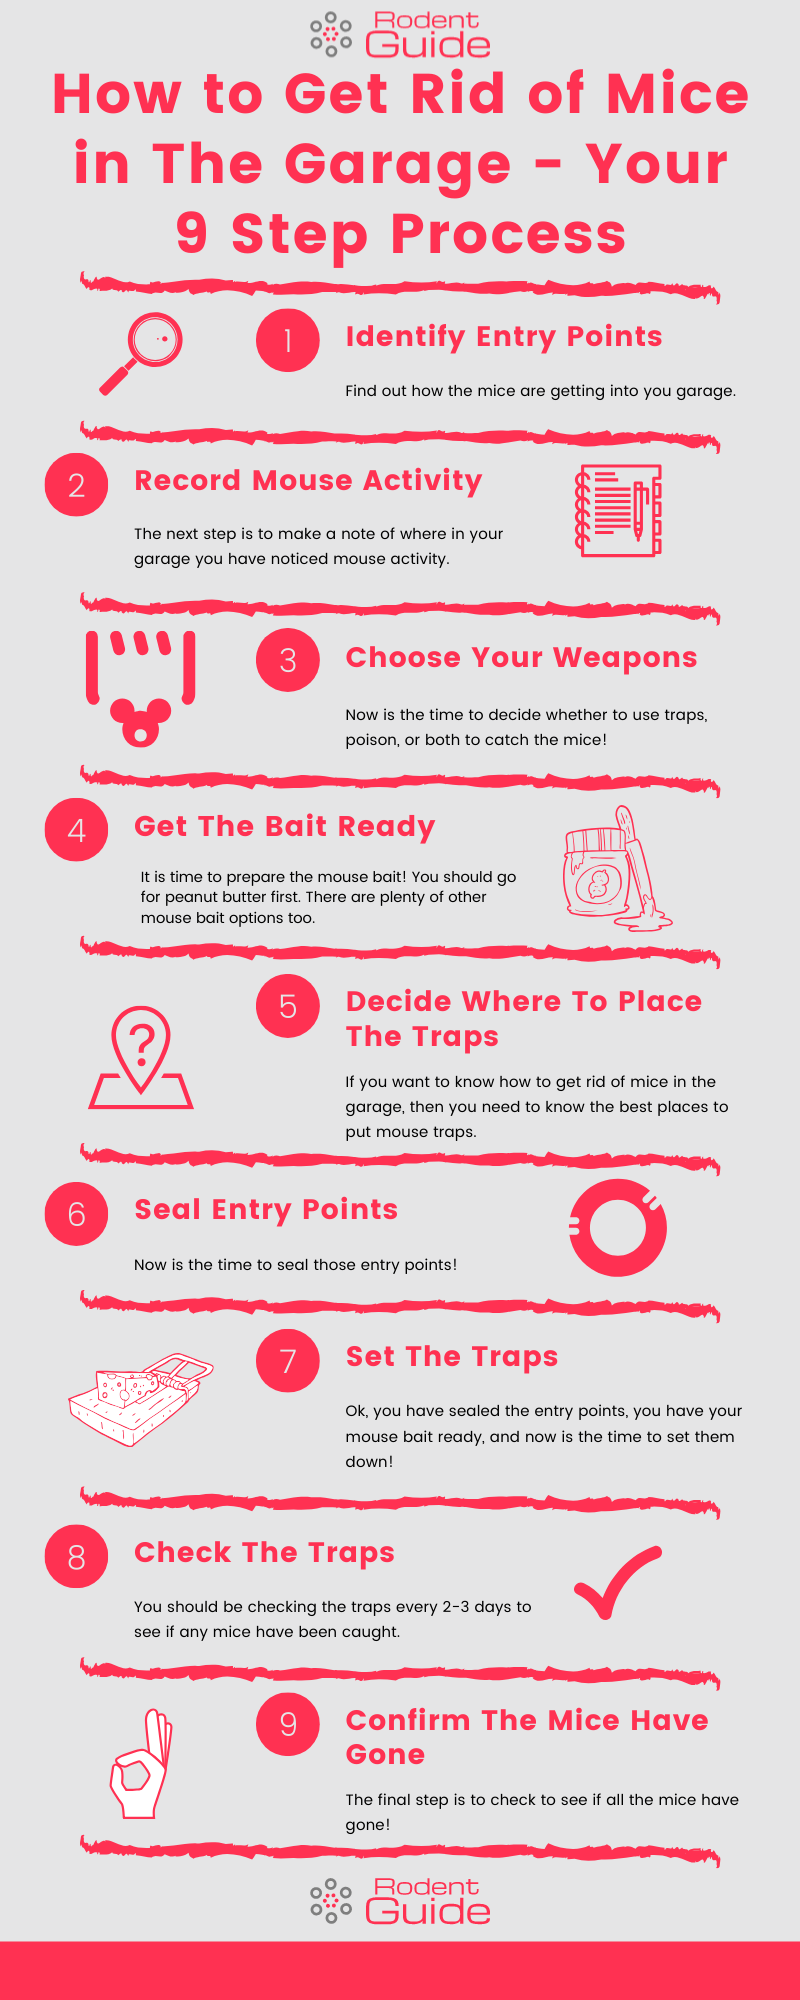 How to Get Rid of Mice in The Garage Infographic